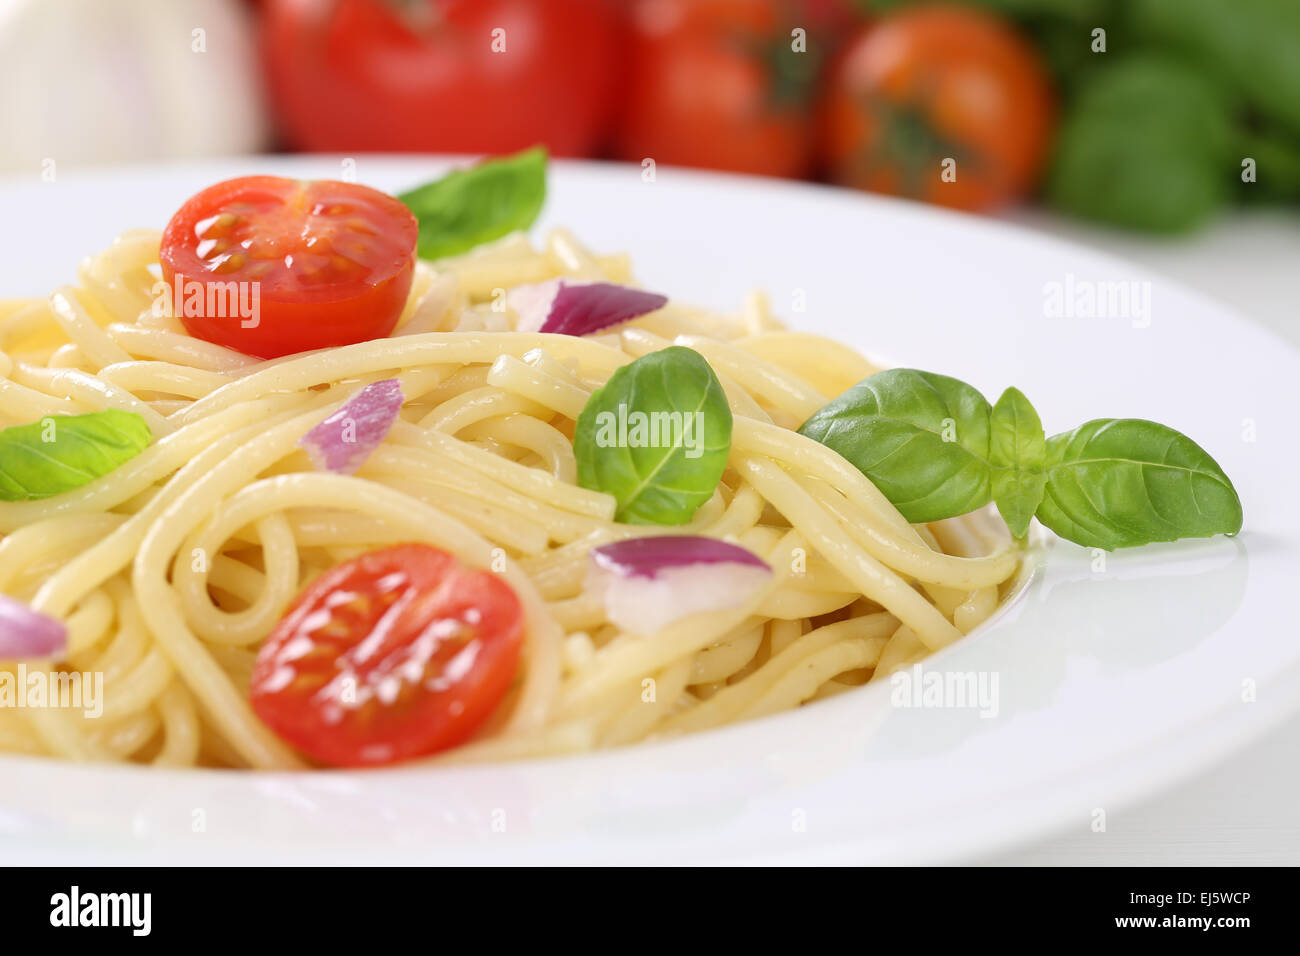 Spaghetti noodles pasta food meal with tomatoes and basil on plate Stock Photo